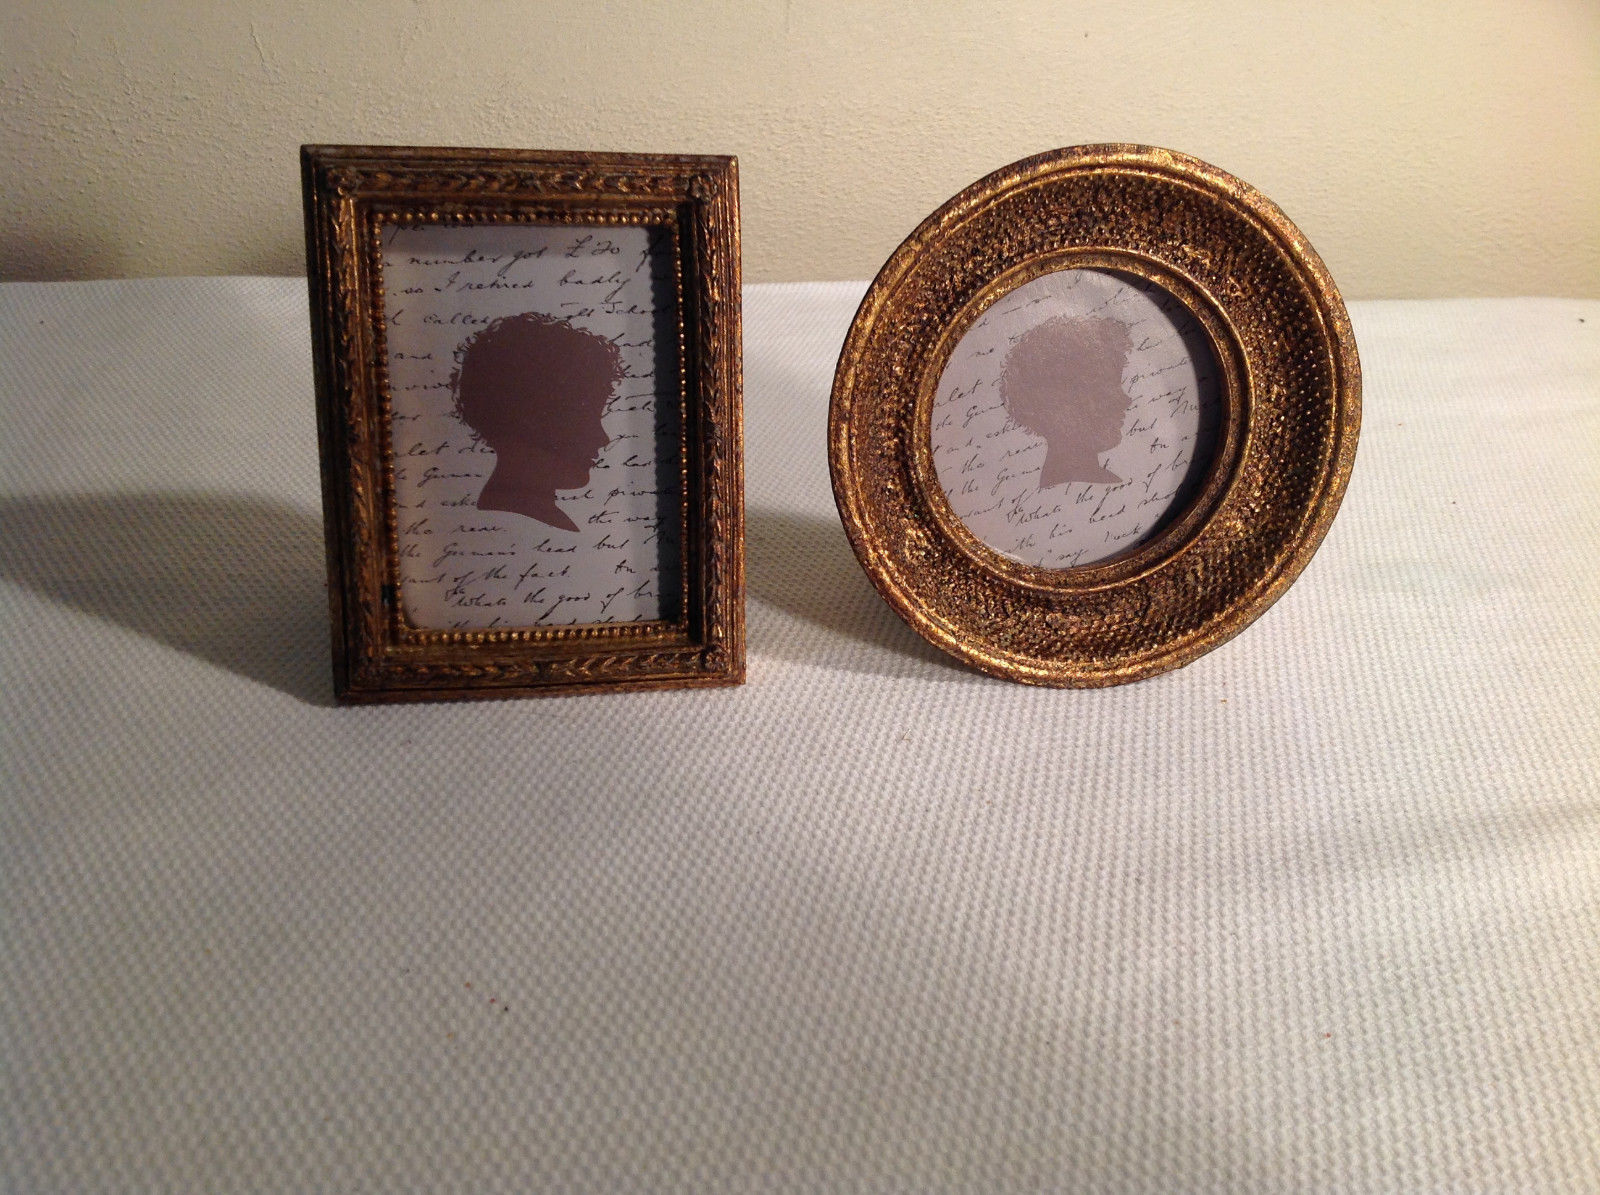 Set of 2 Matching mini-portrait frames, vintage gilded look